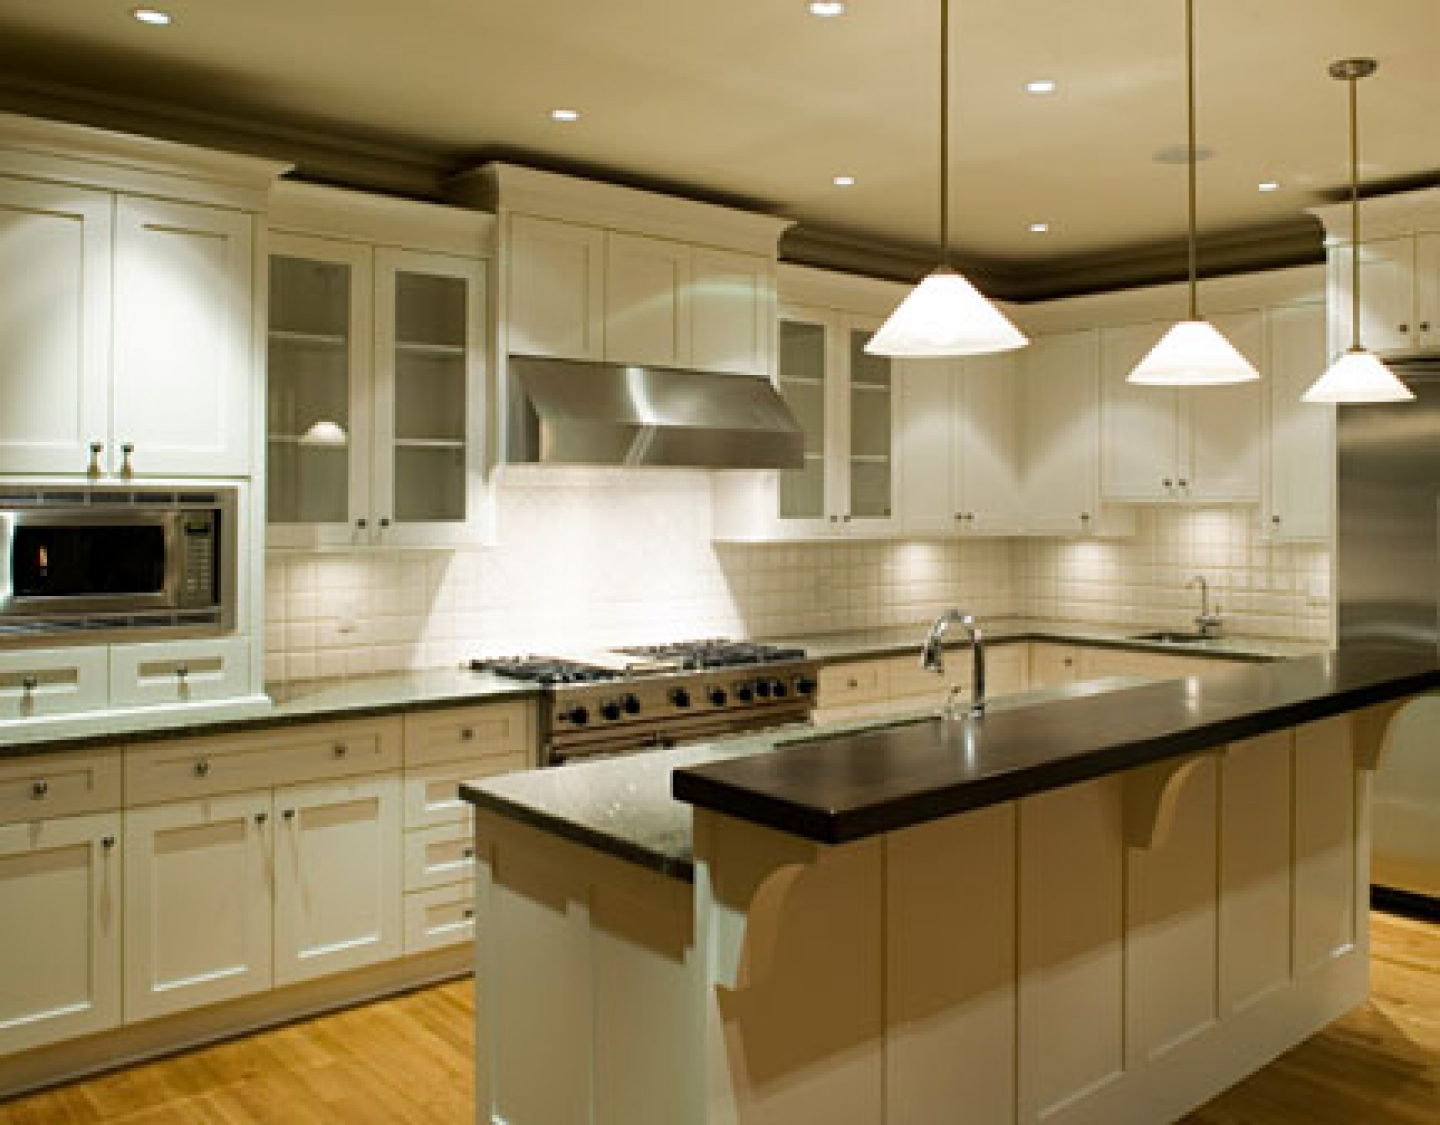 white kitchen cabinets: stylize your house | cabinets direct